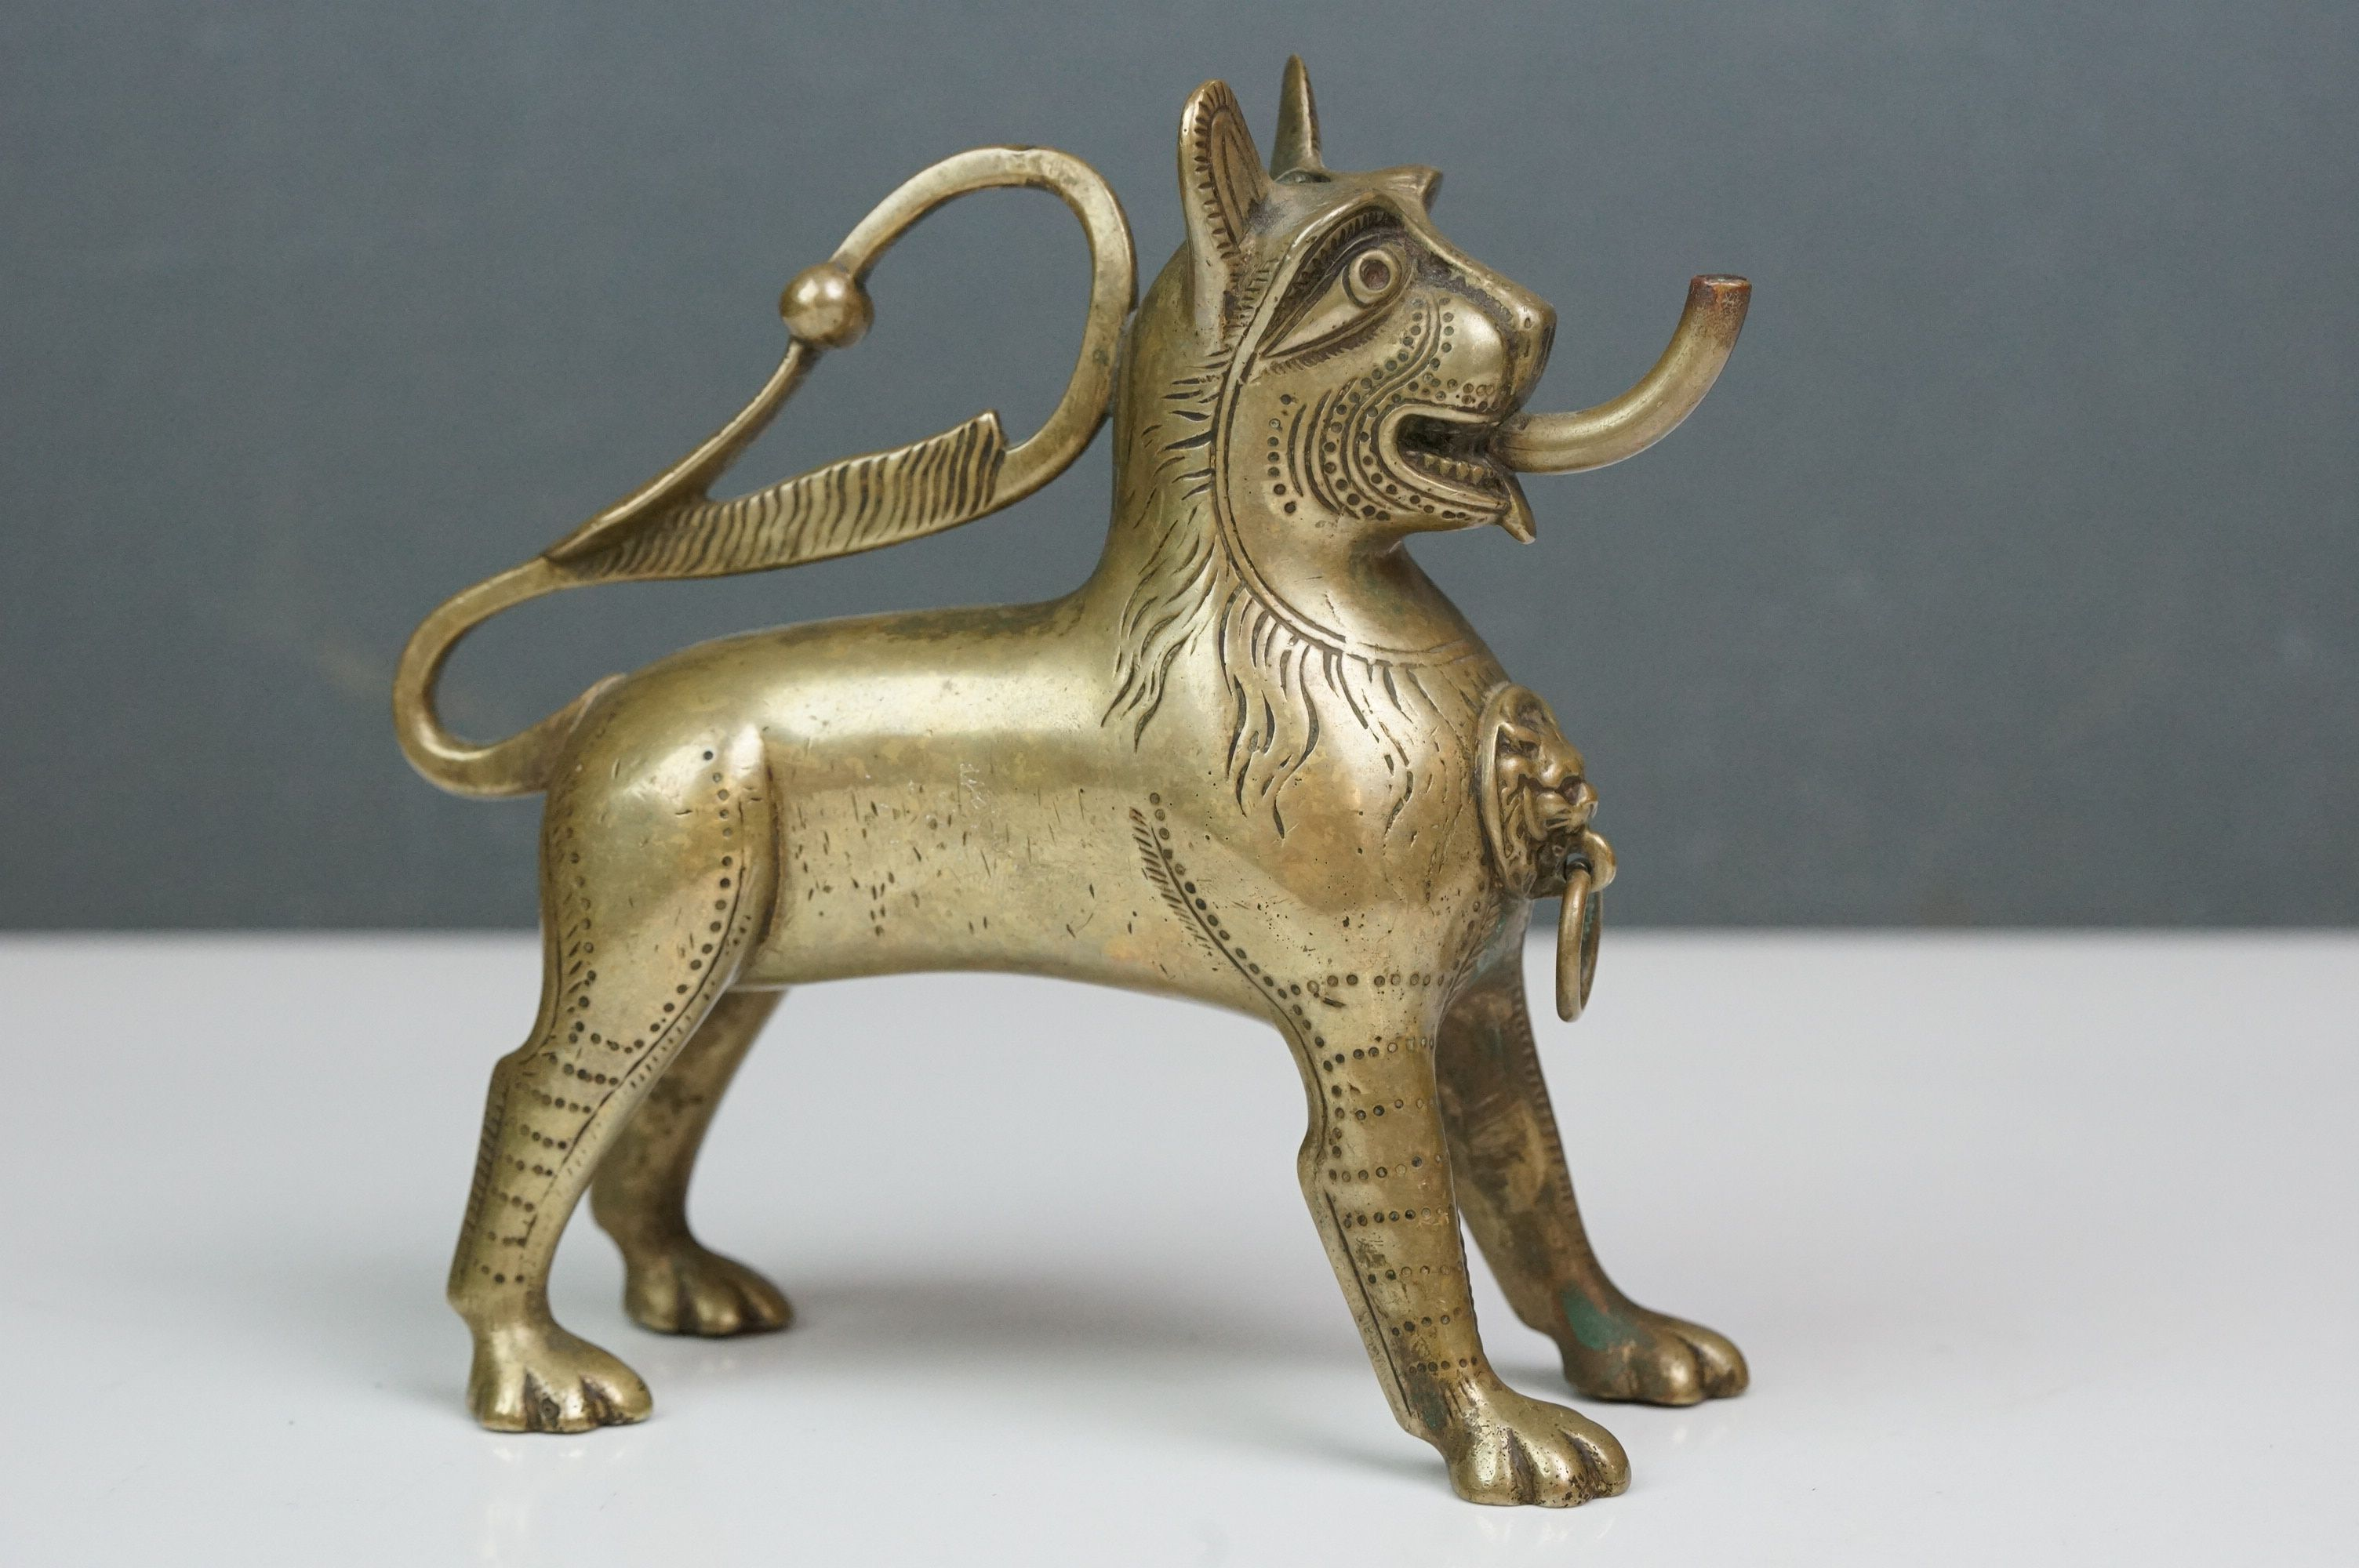 Antique brass table top cigar lighter in the form of a stylized dog